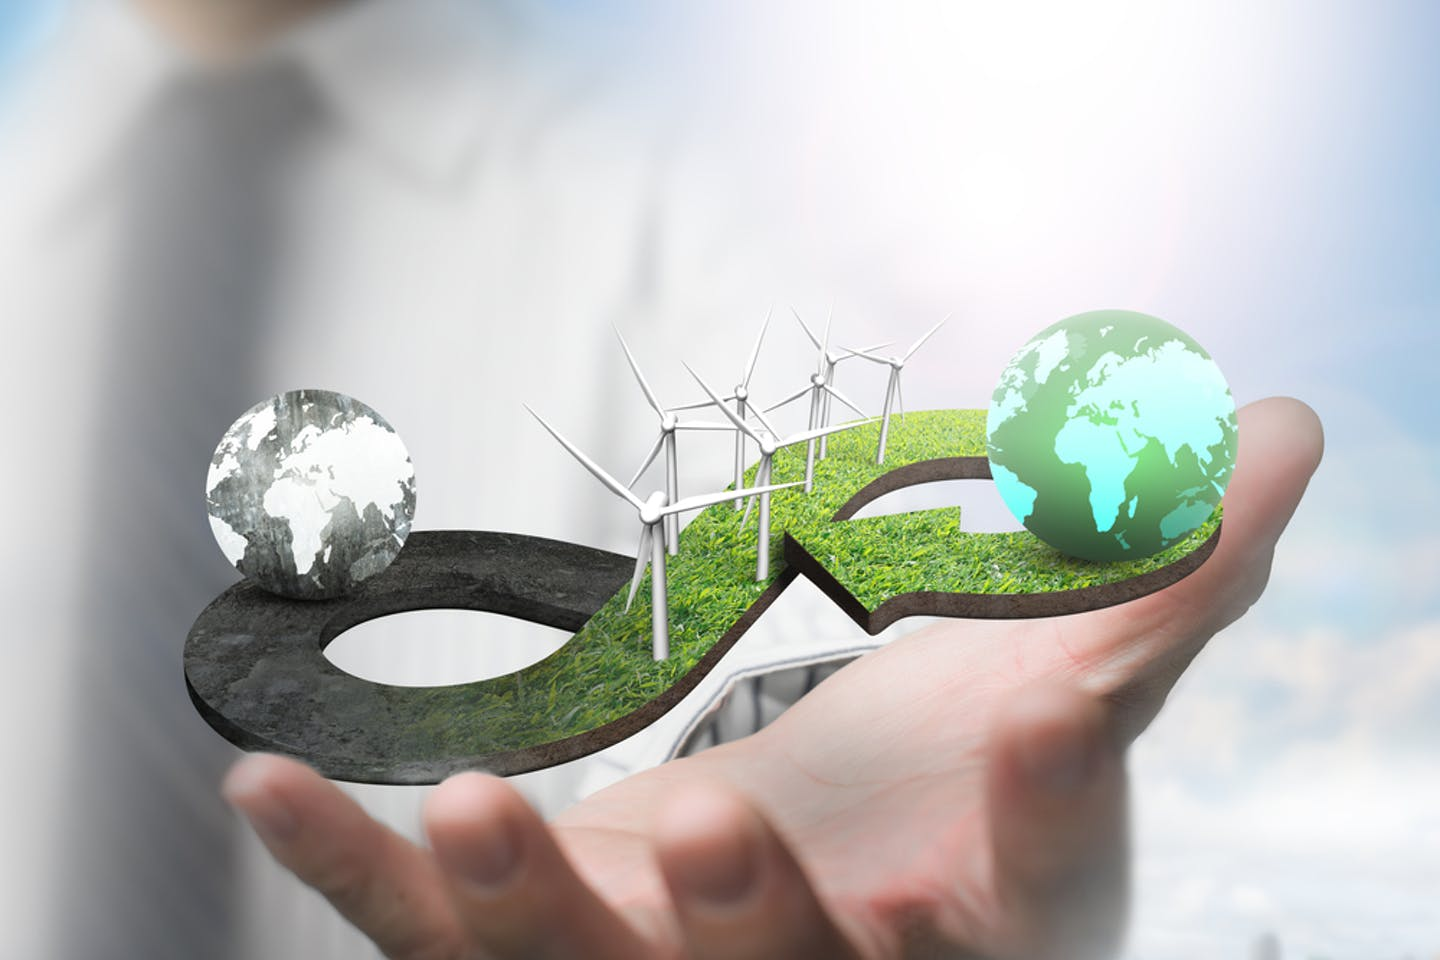 SGInnovate partners with World Economic Forum to accelerate circular economy